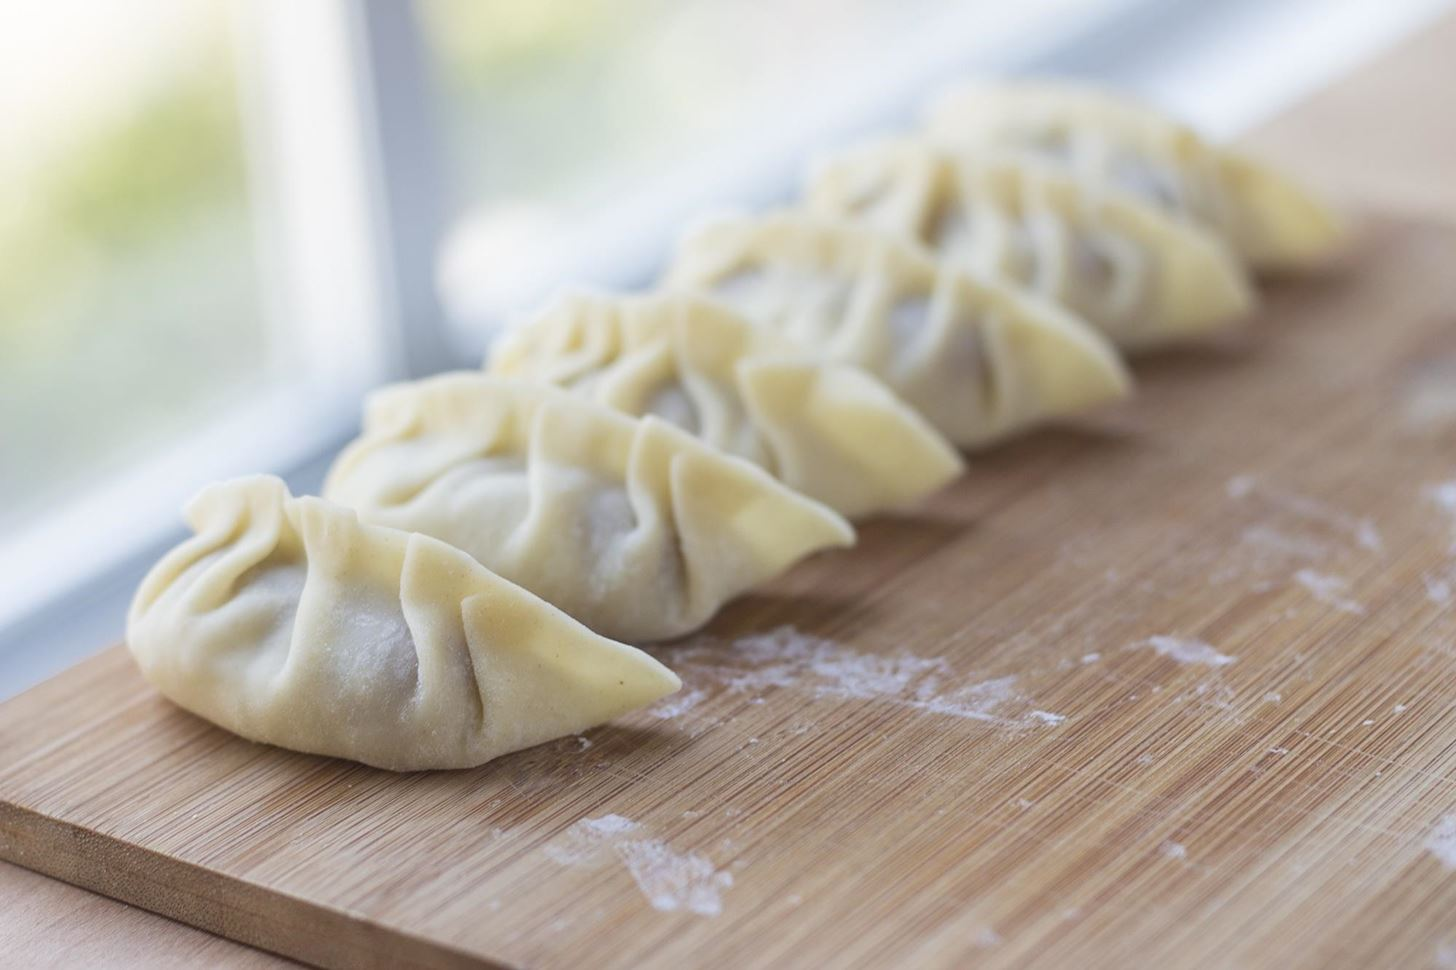 Get Creative: Make Dumplings with Cheeseburgers & Kielbasa